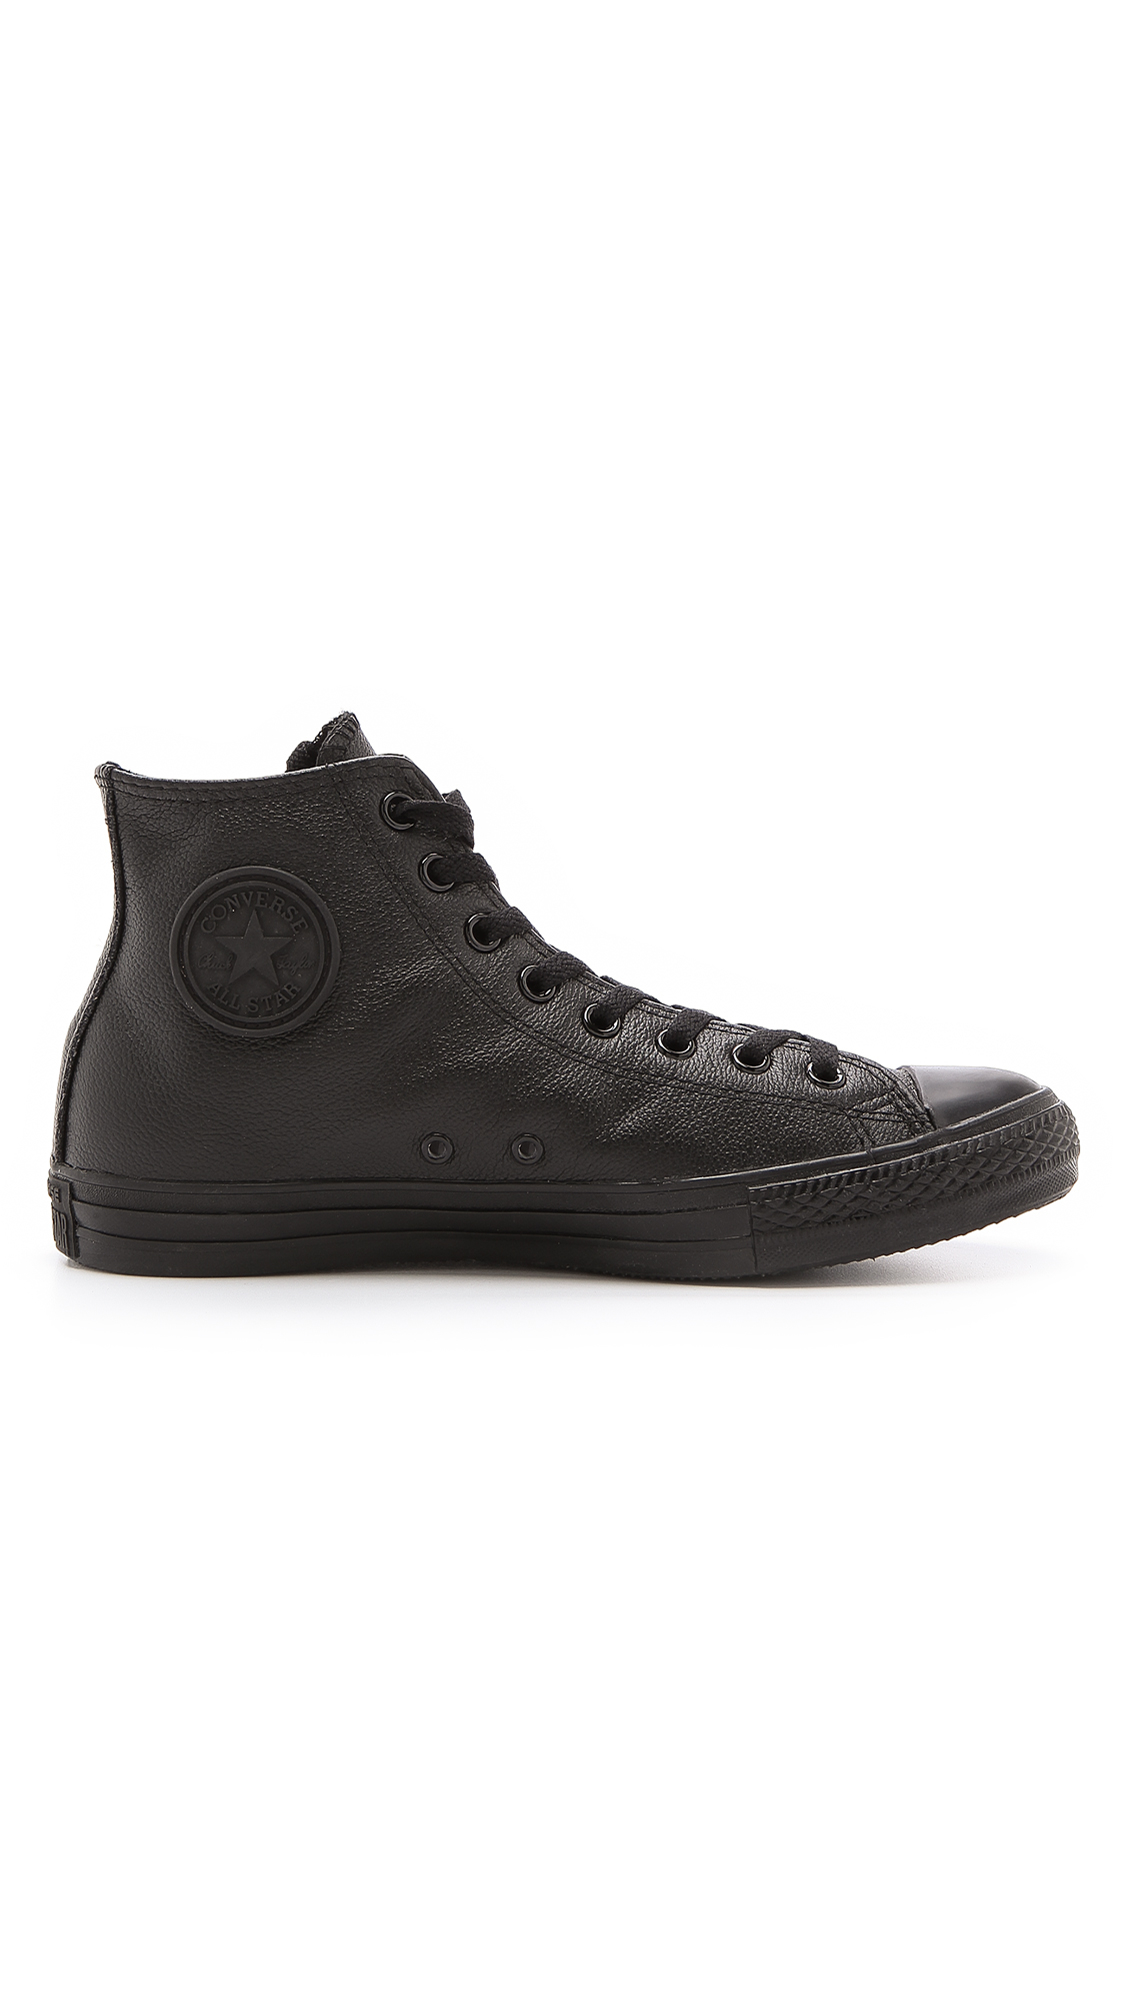 Converse Chuck Taylor All Star Leather High Top Sneakers